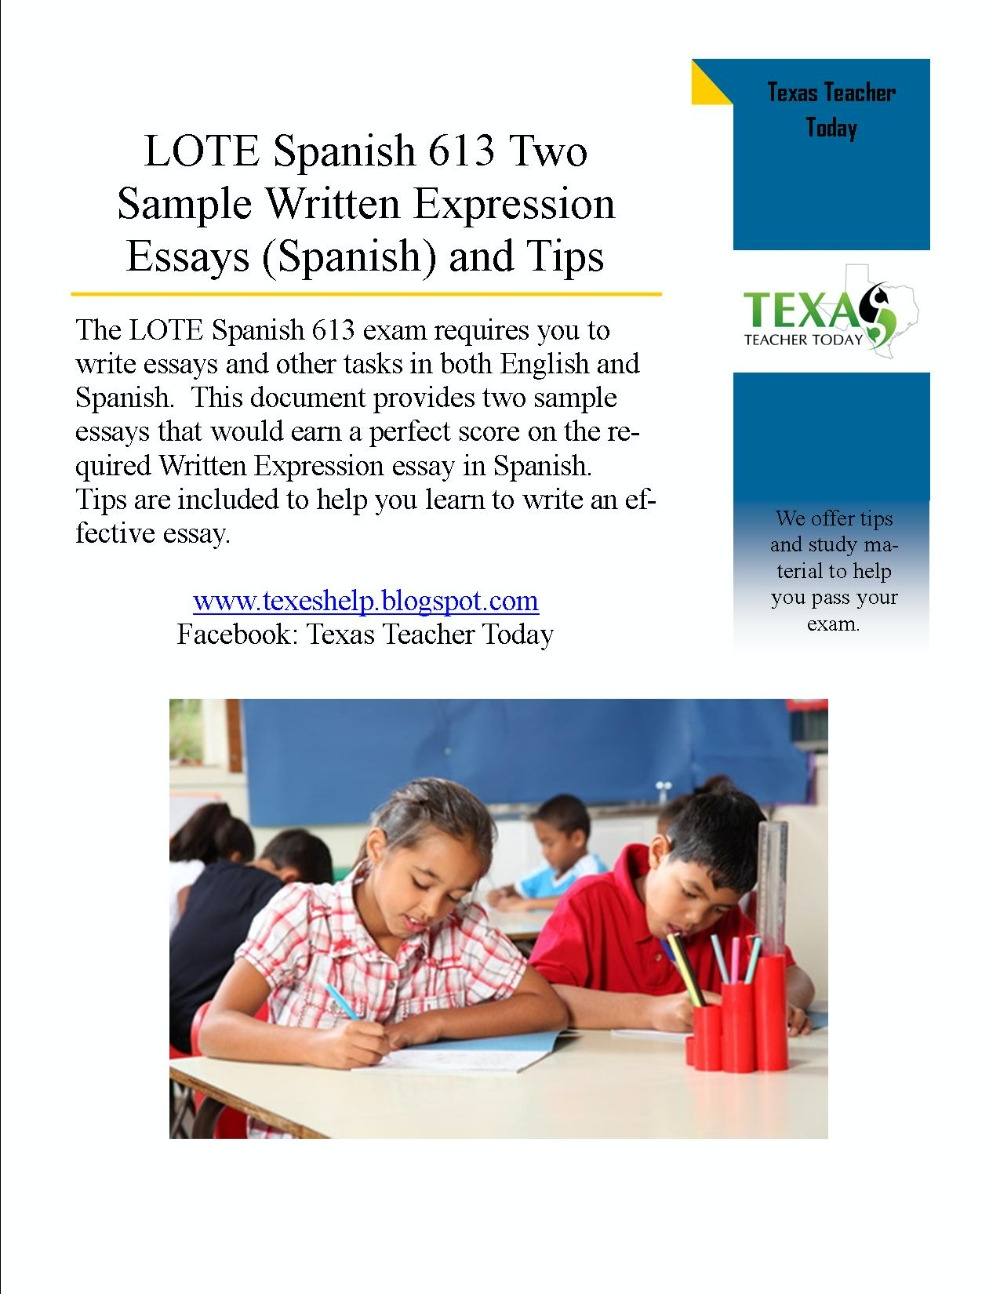 Tips for writing essays in spanish